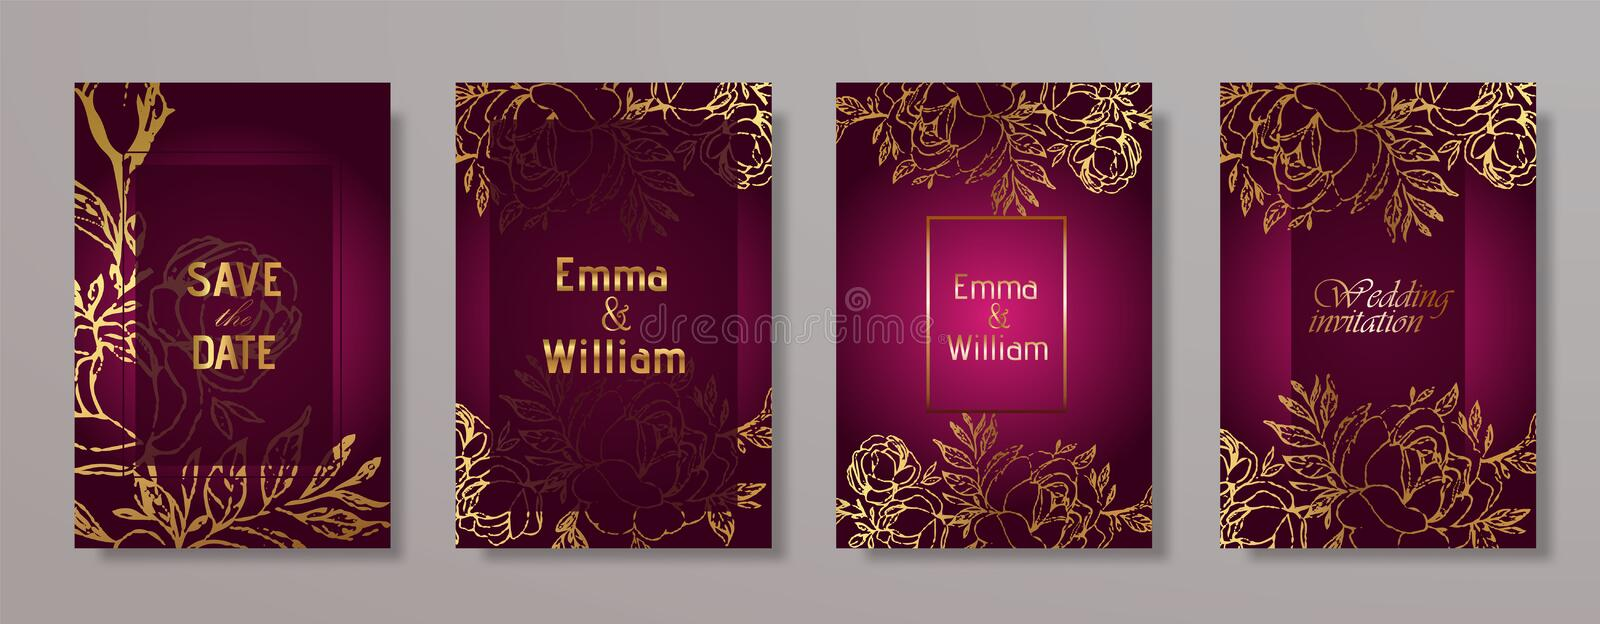 Wedding invitation card. Vector template for wedding invitation with gold flowers. Luxury wedding invitation frame set. Wedding invitation card. Vector template royalty free illustration